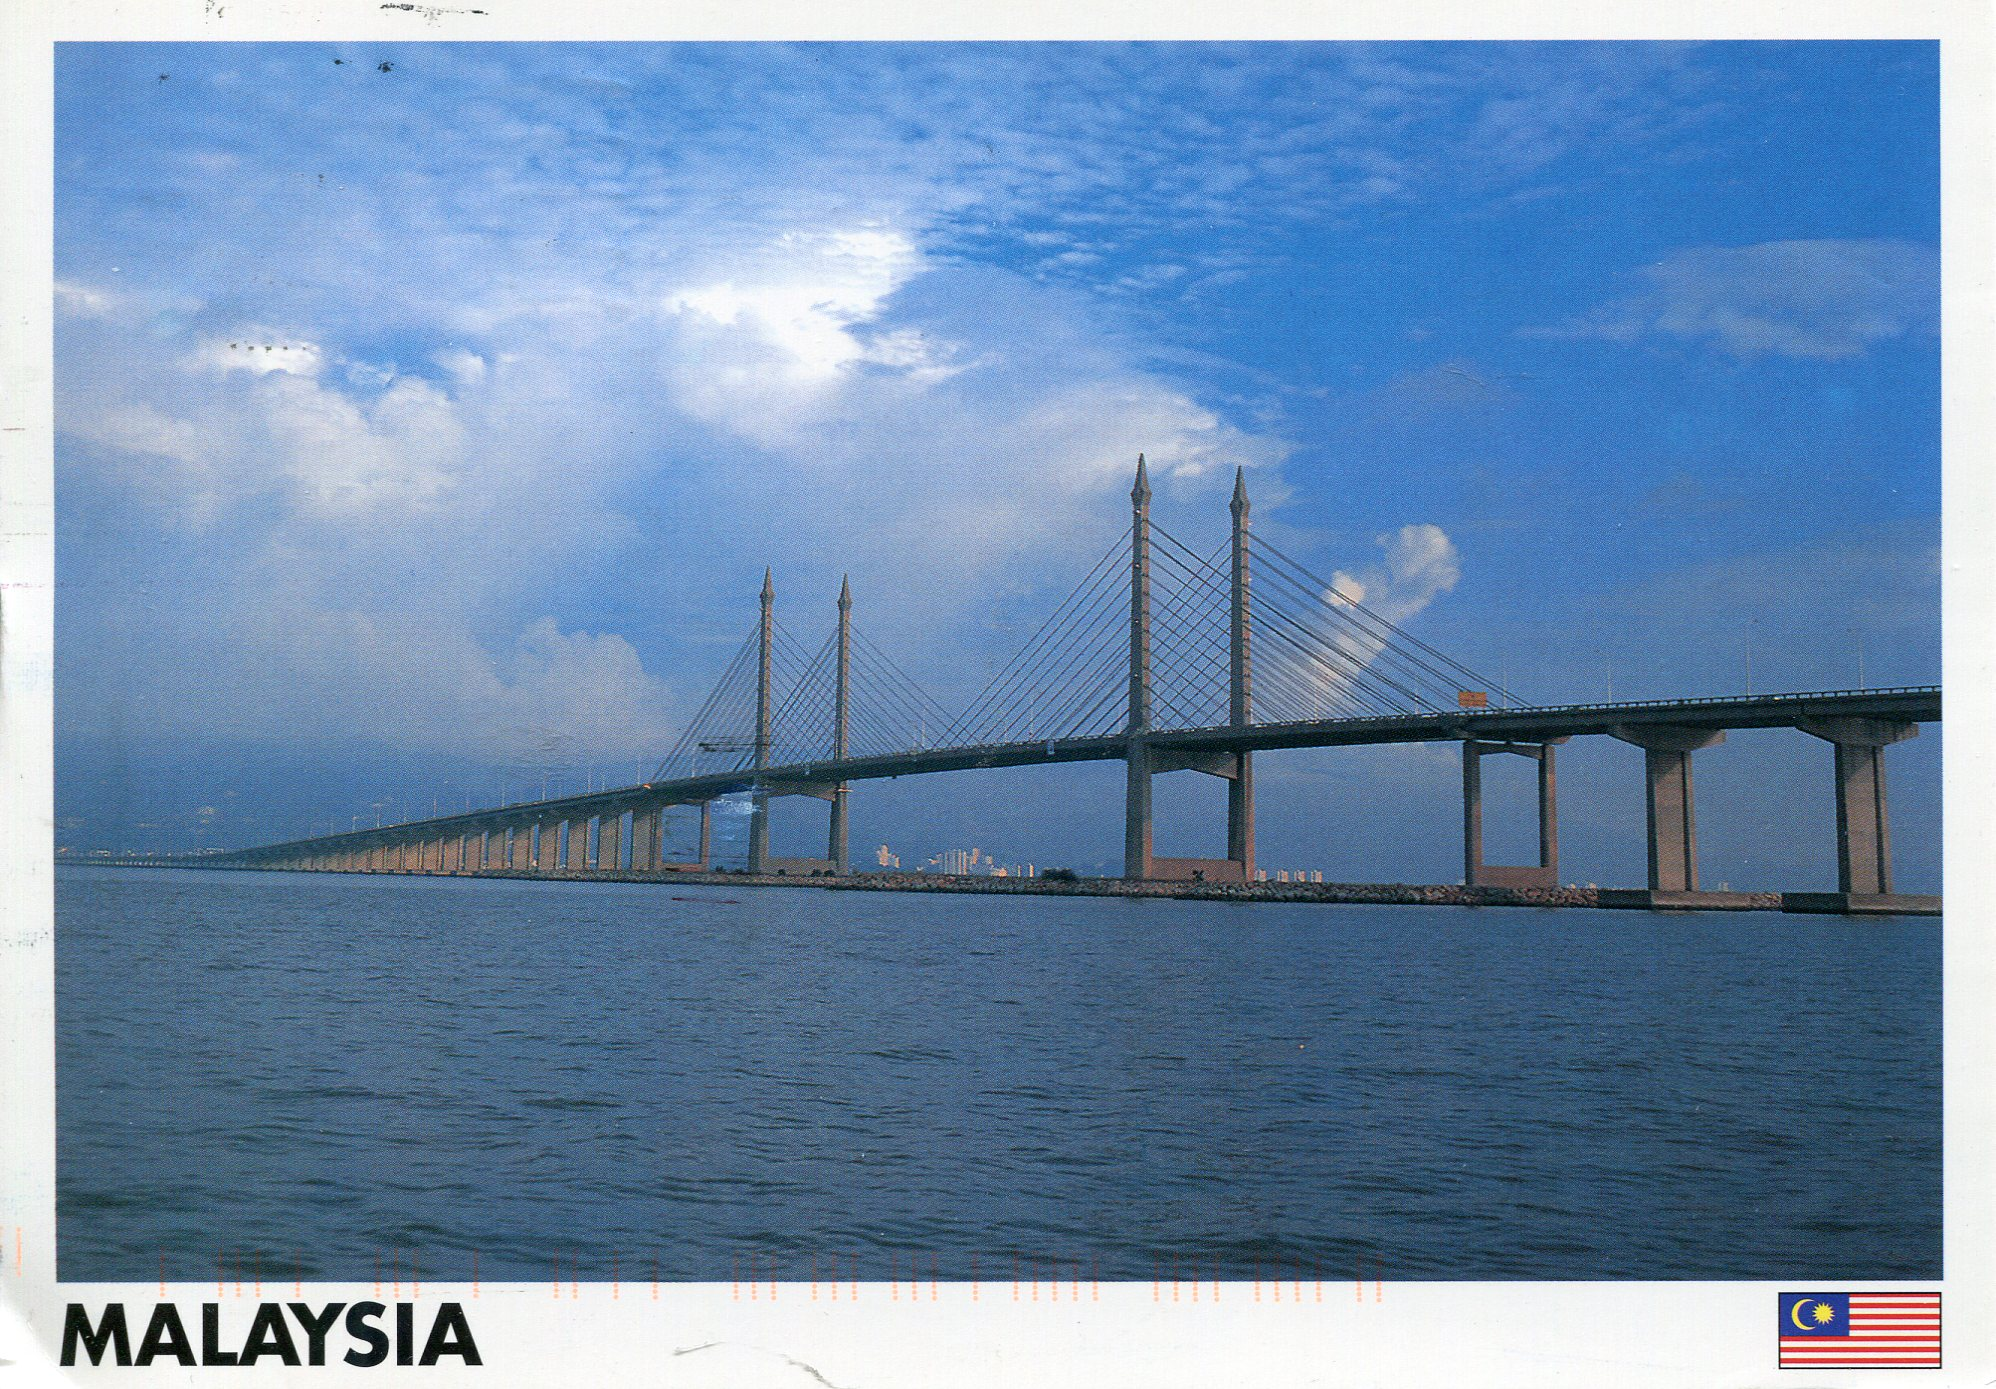 the penang second brigde in malaysia Construction of penang bridge certainly create better economic advantages, which also outweigh the social impacts, as the bridge is linking the 2 malaysia regions however, the malacca and damai bridge, the social impact does not justify the economic advantages, and it is a super high risk project than burj dubai.